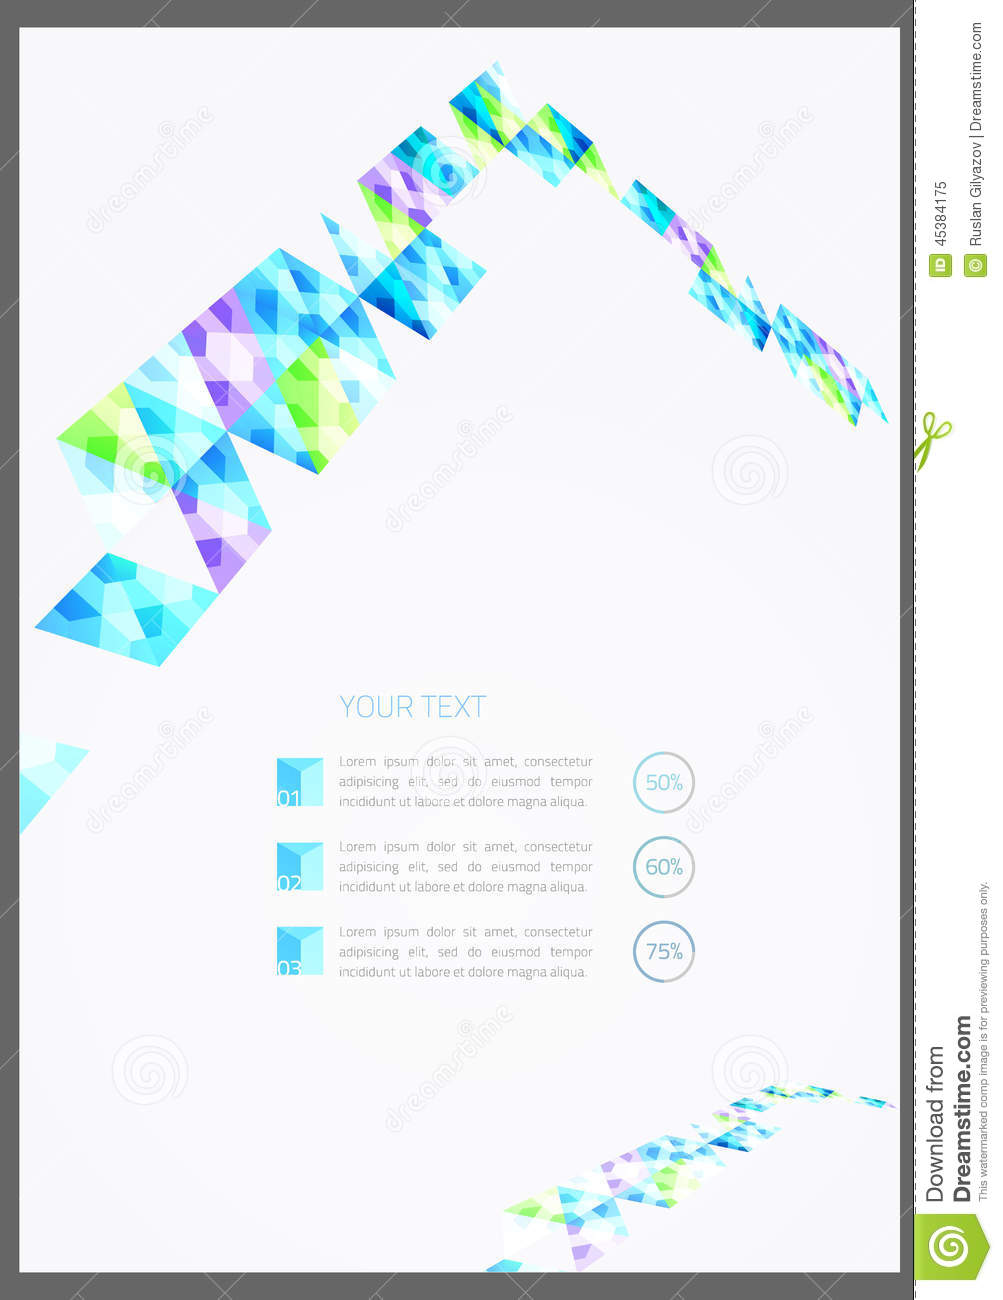 Vector Geometric Flyer Template Illustration Image 45384175 – Geometric Flyer Template